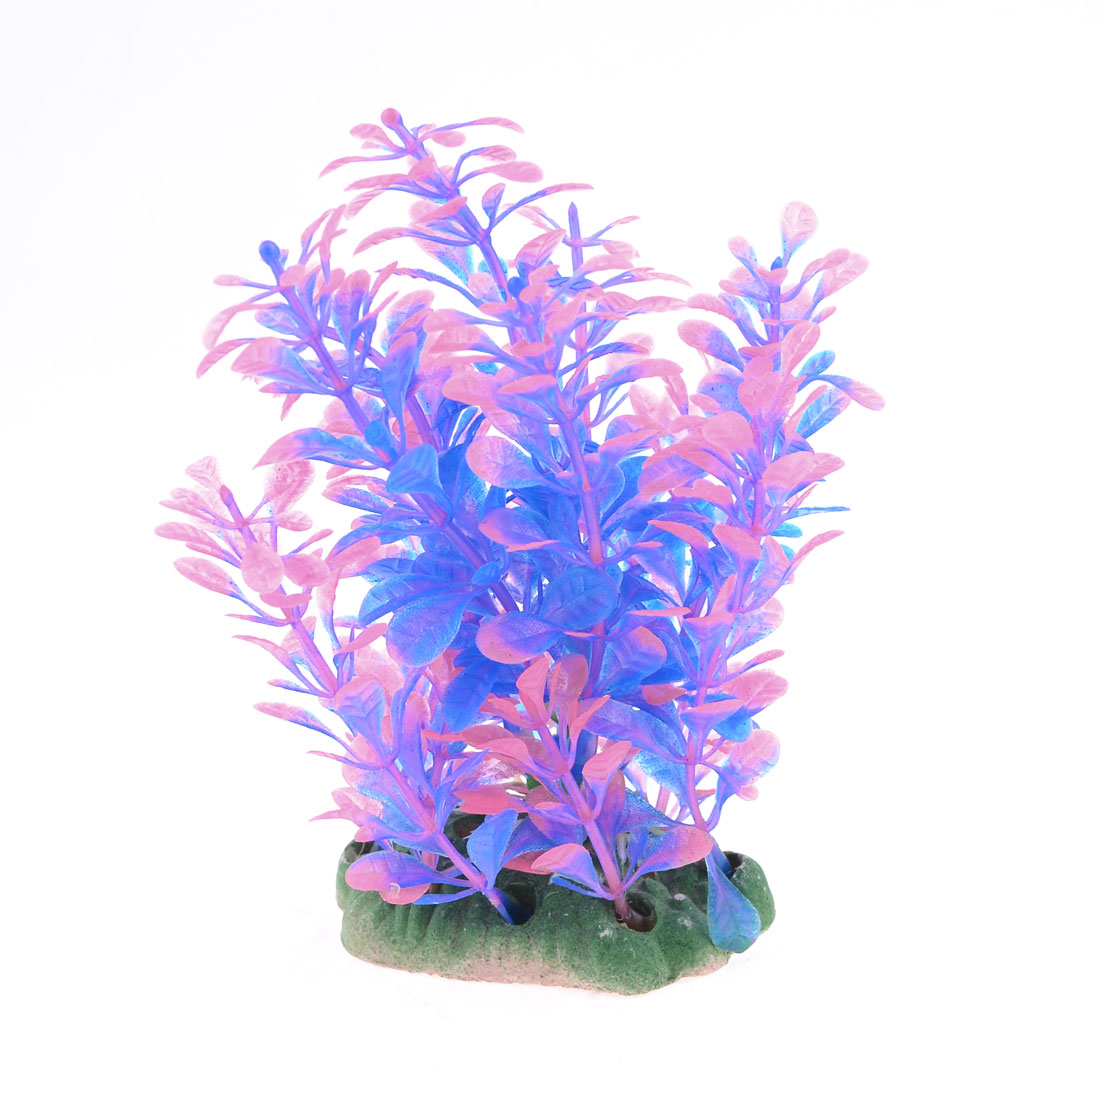 Fish Tank Aquatic Ceramic Base Plant Grass Underwater Decor Pink Blue 11cm